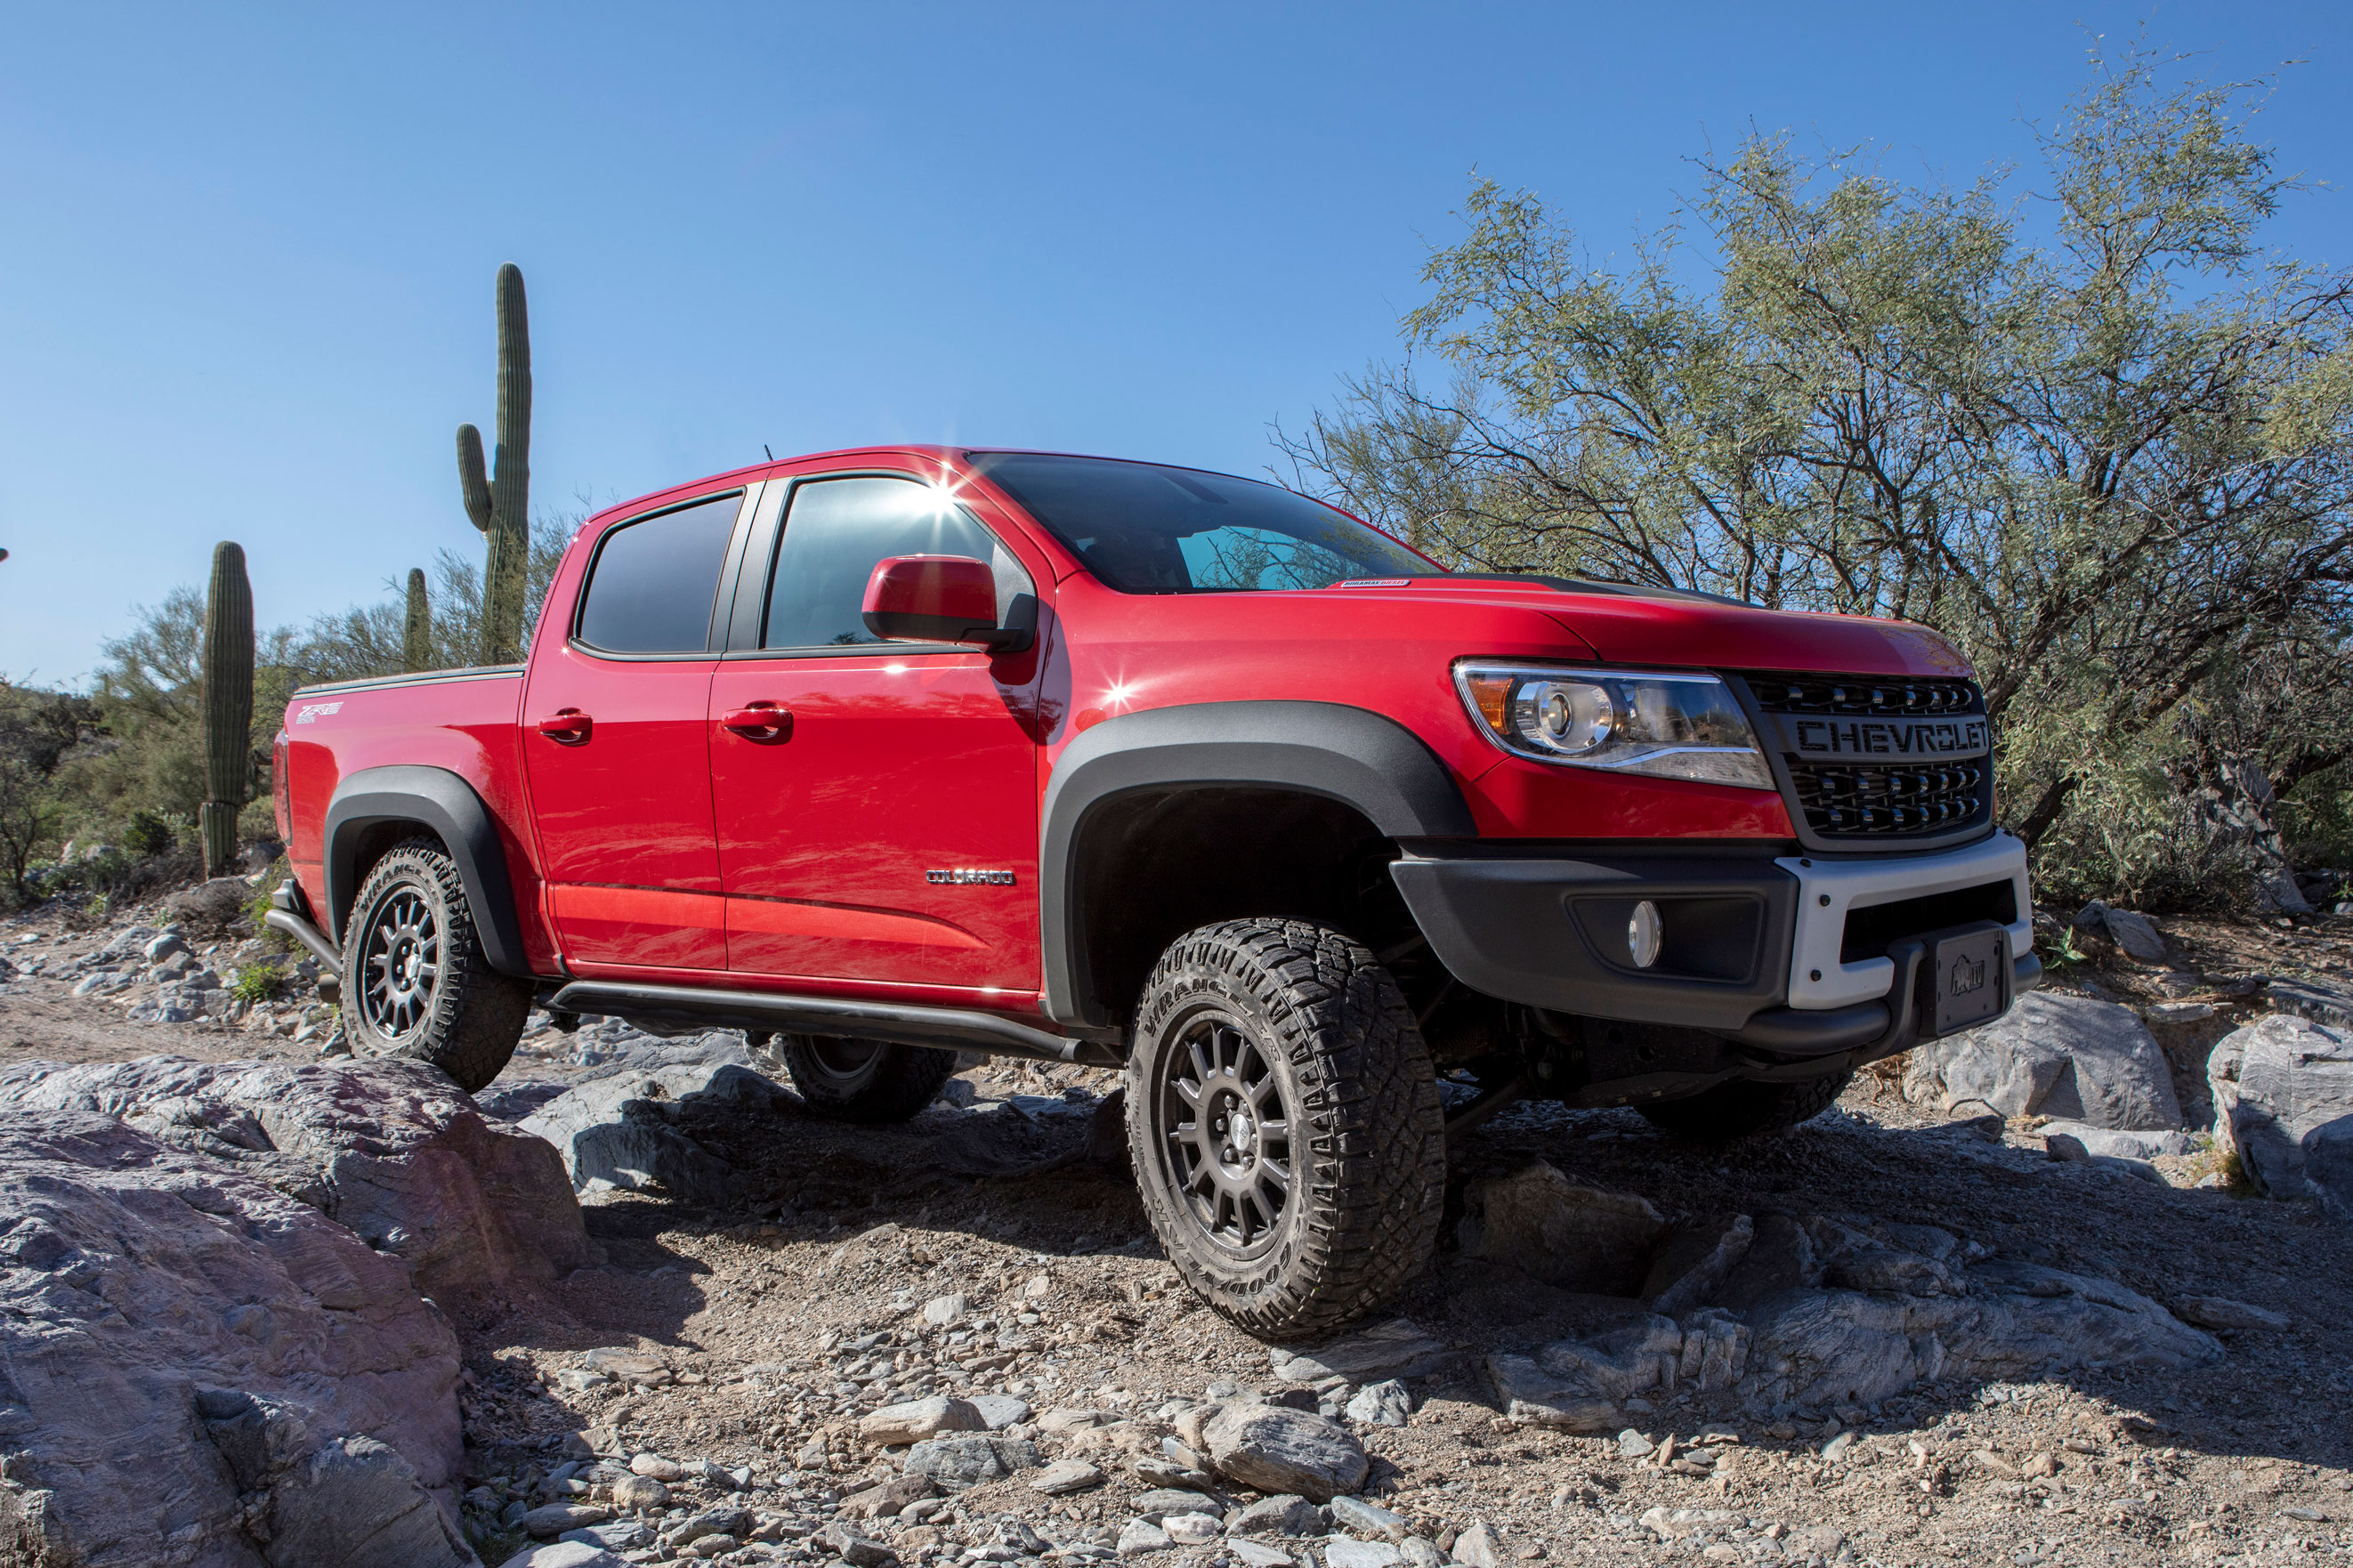 Chevy ZR2 Bison off-road truck